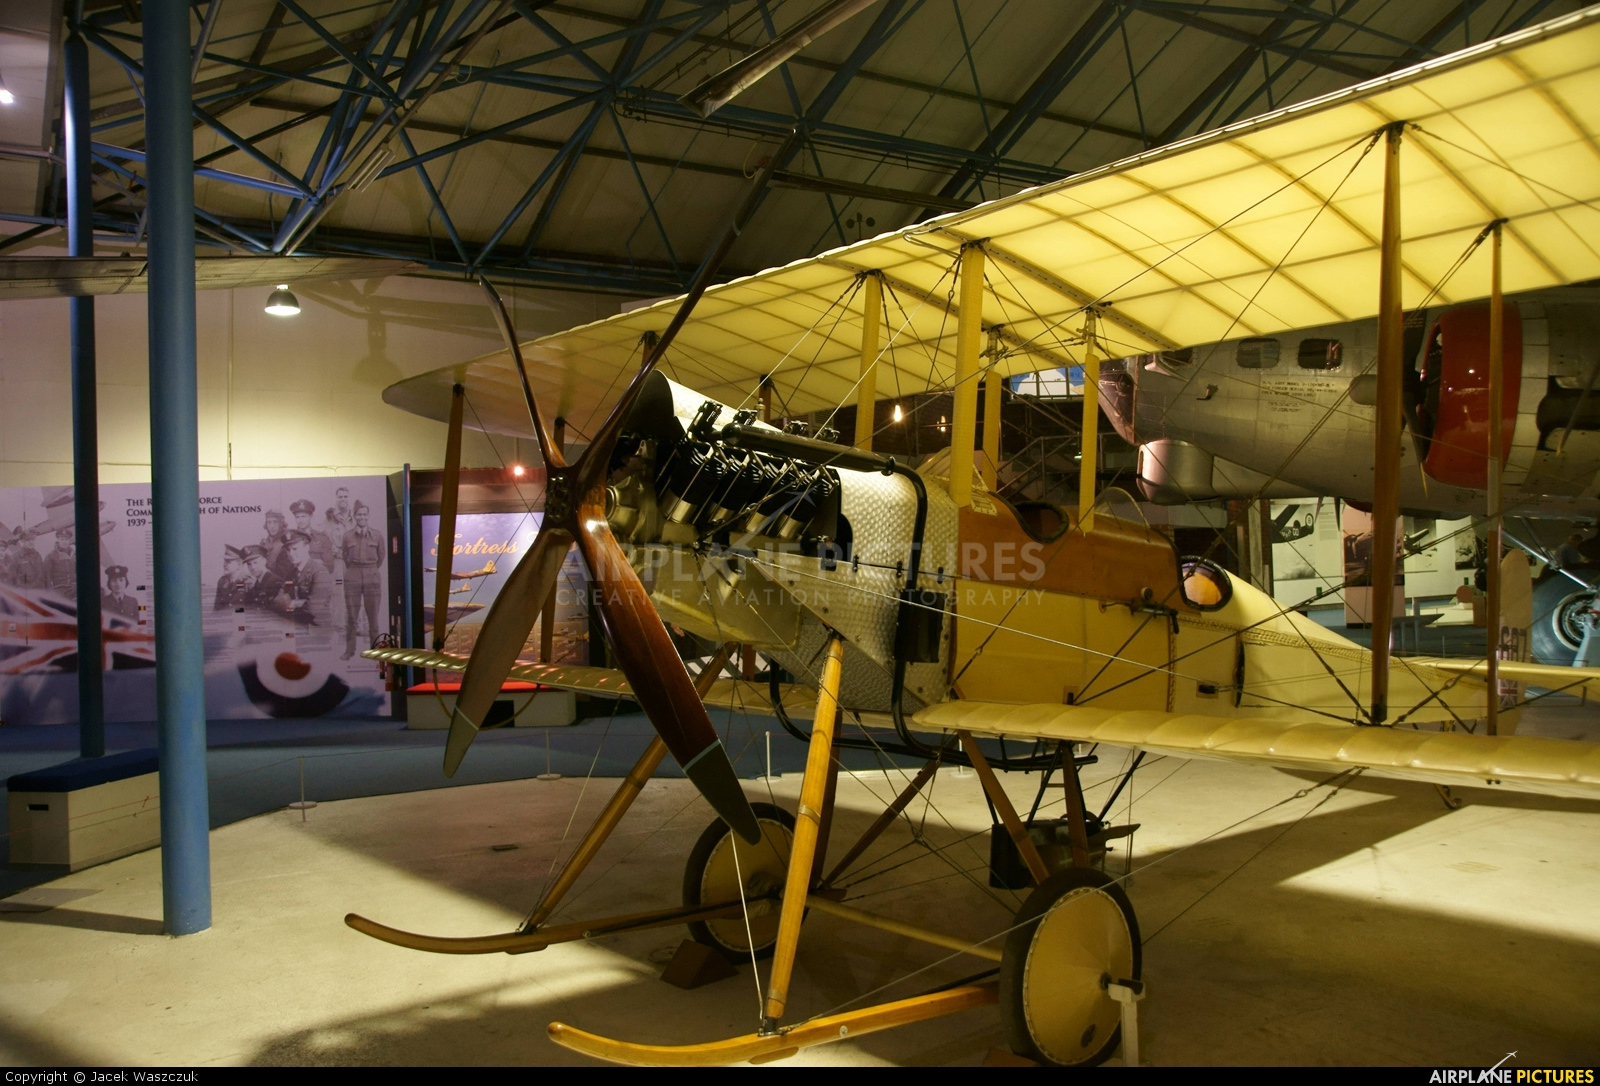 Royal Air Force 687 aircraft at Hendon - RAF Museum